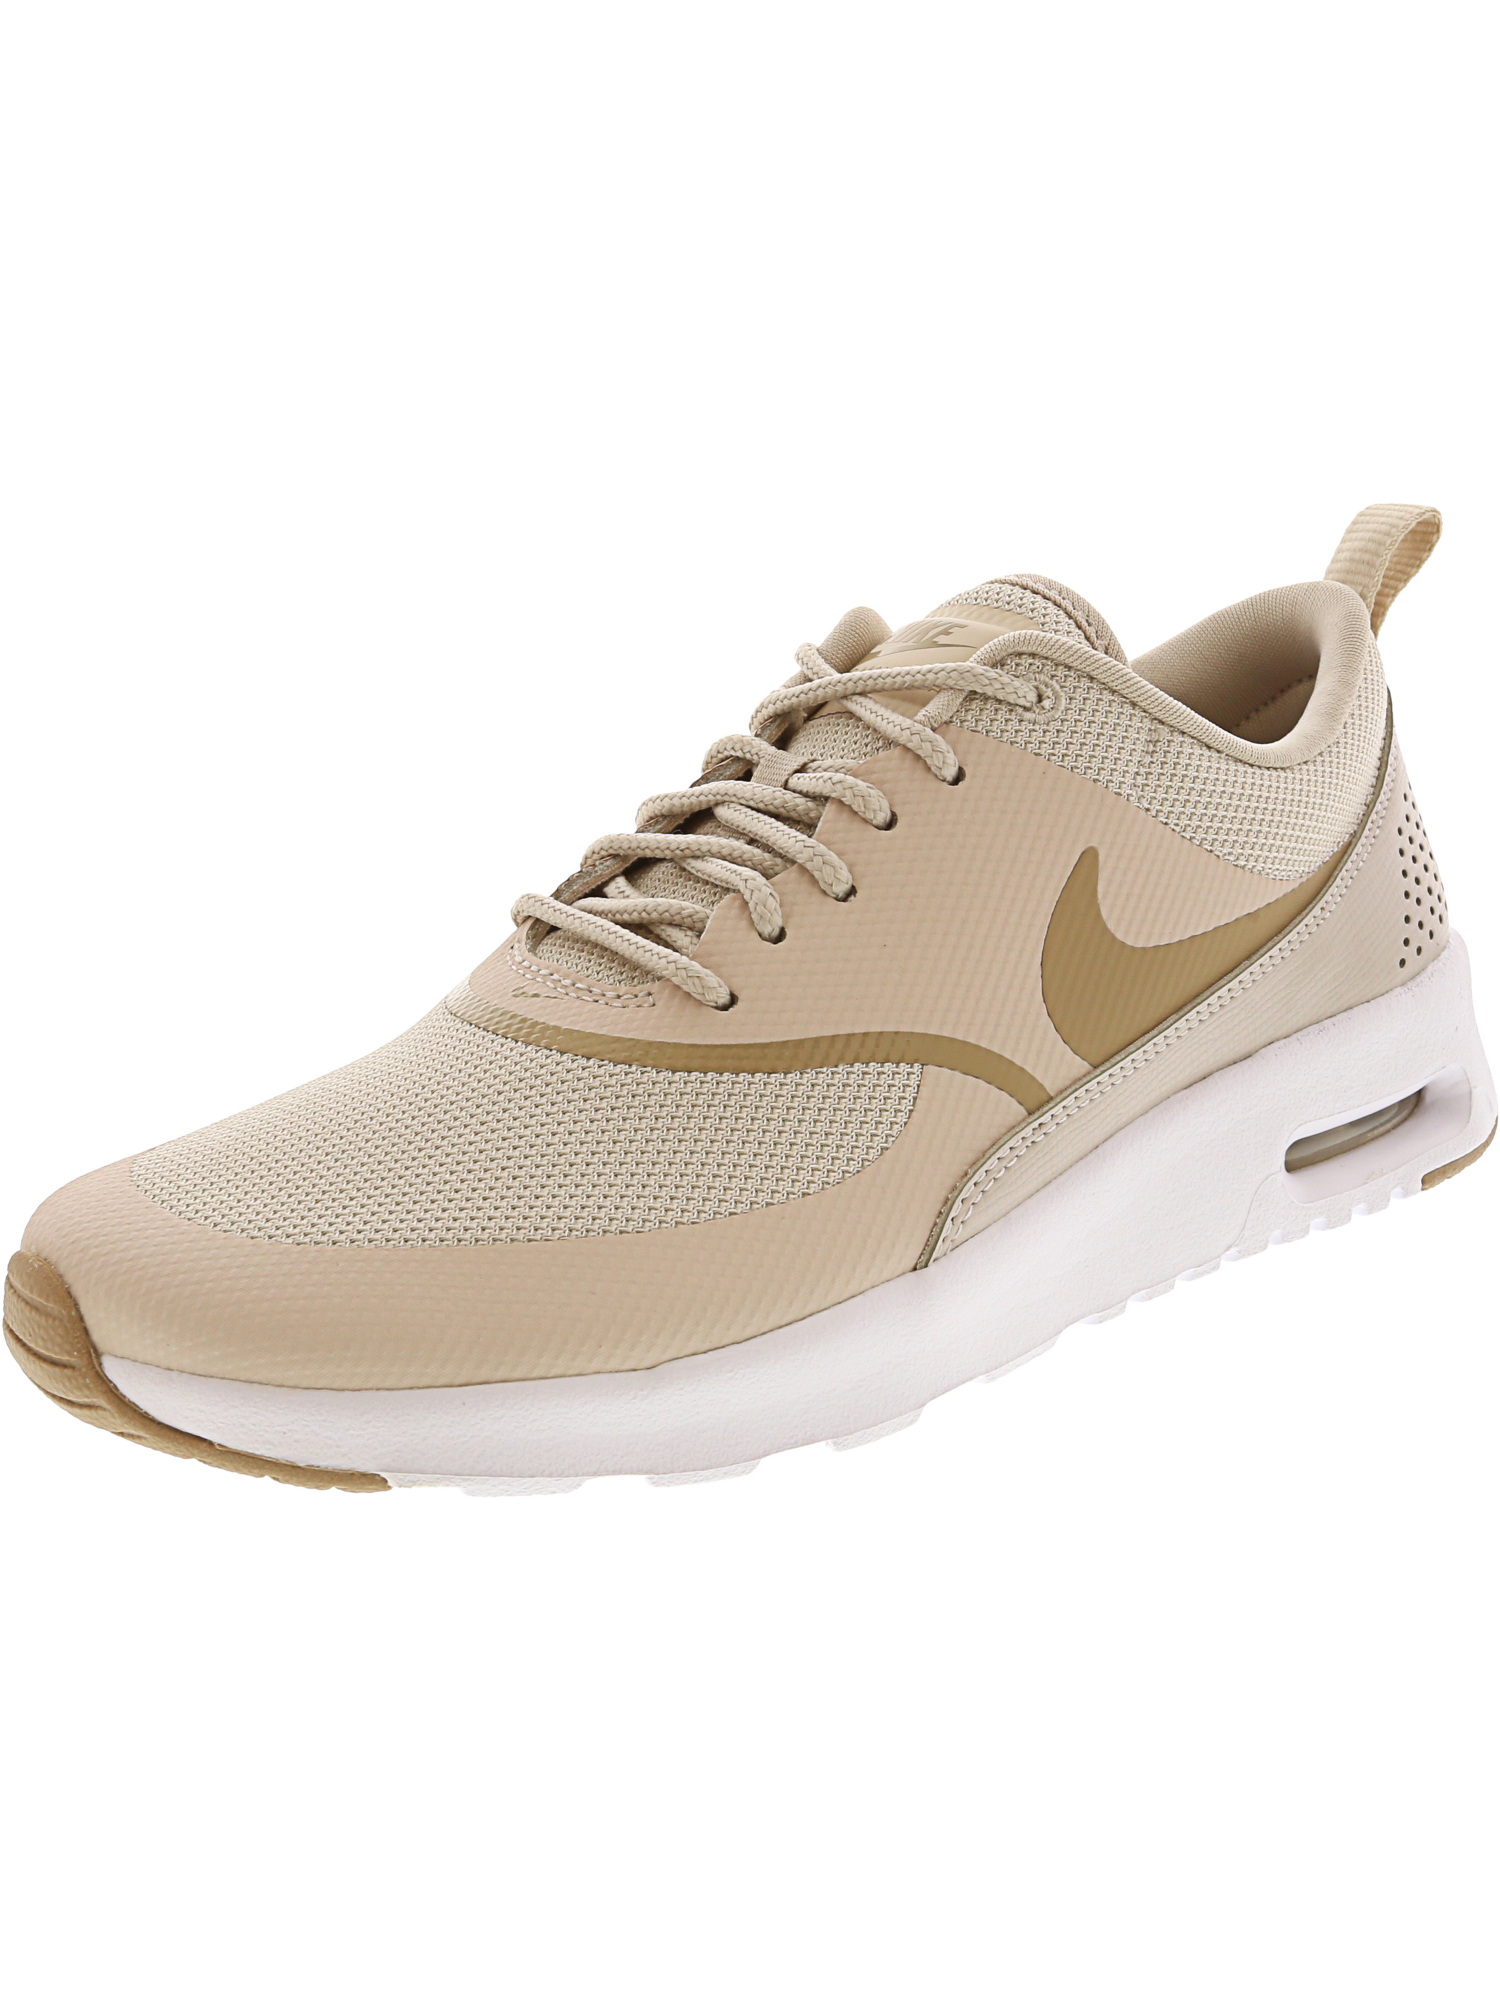 7a407d3e32 Nike Women's Air Max Thea Ankle-High Running Shoe | eBay